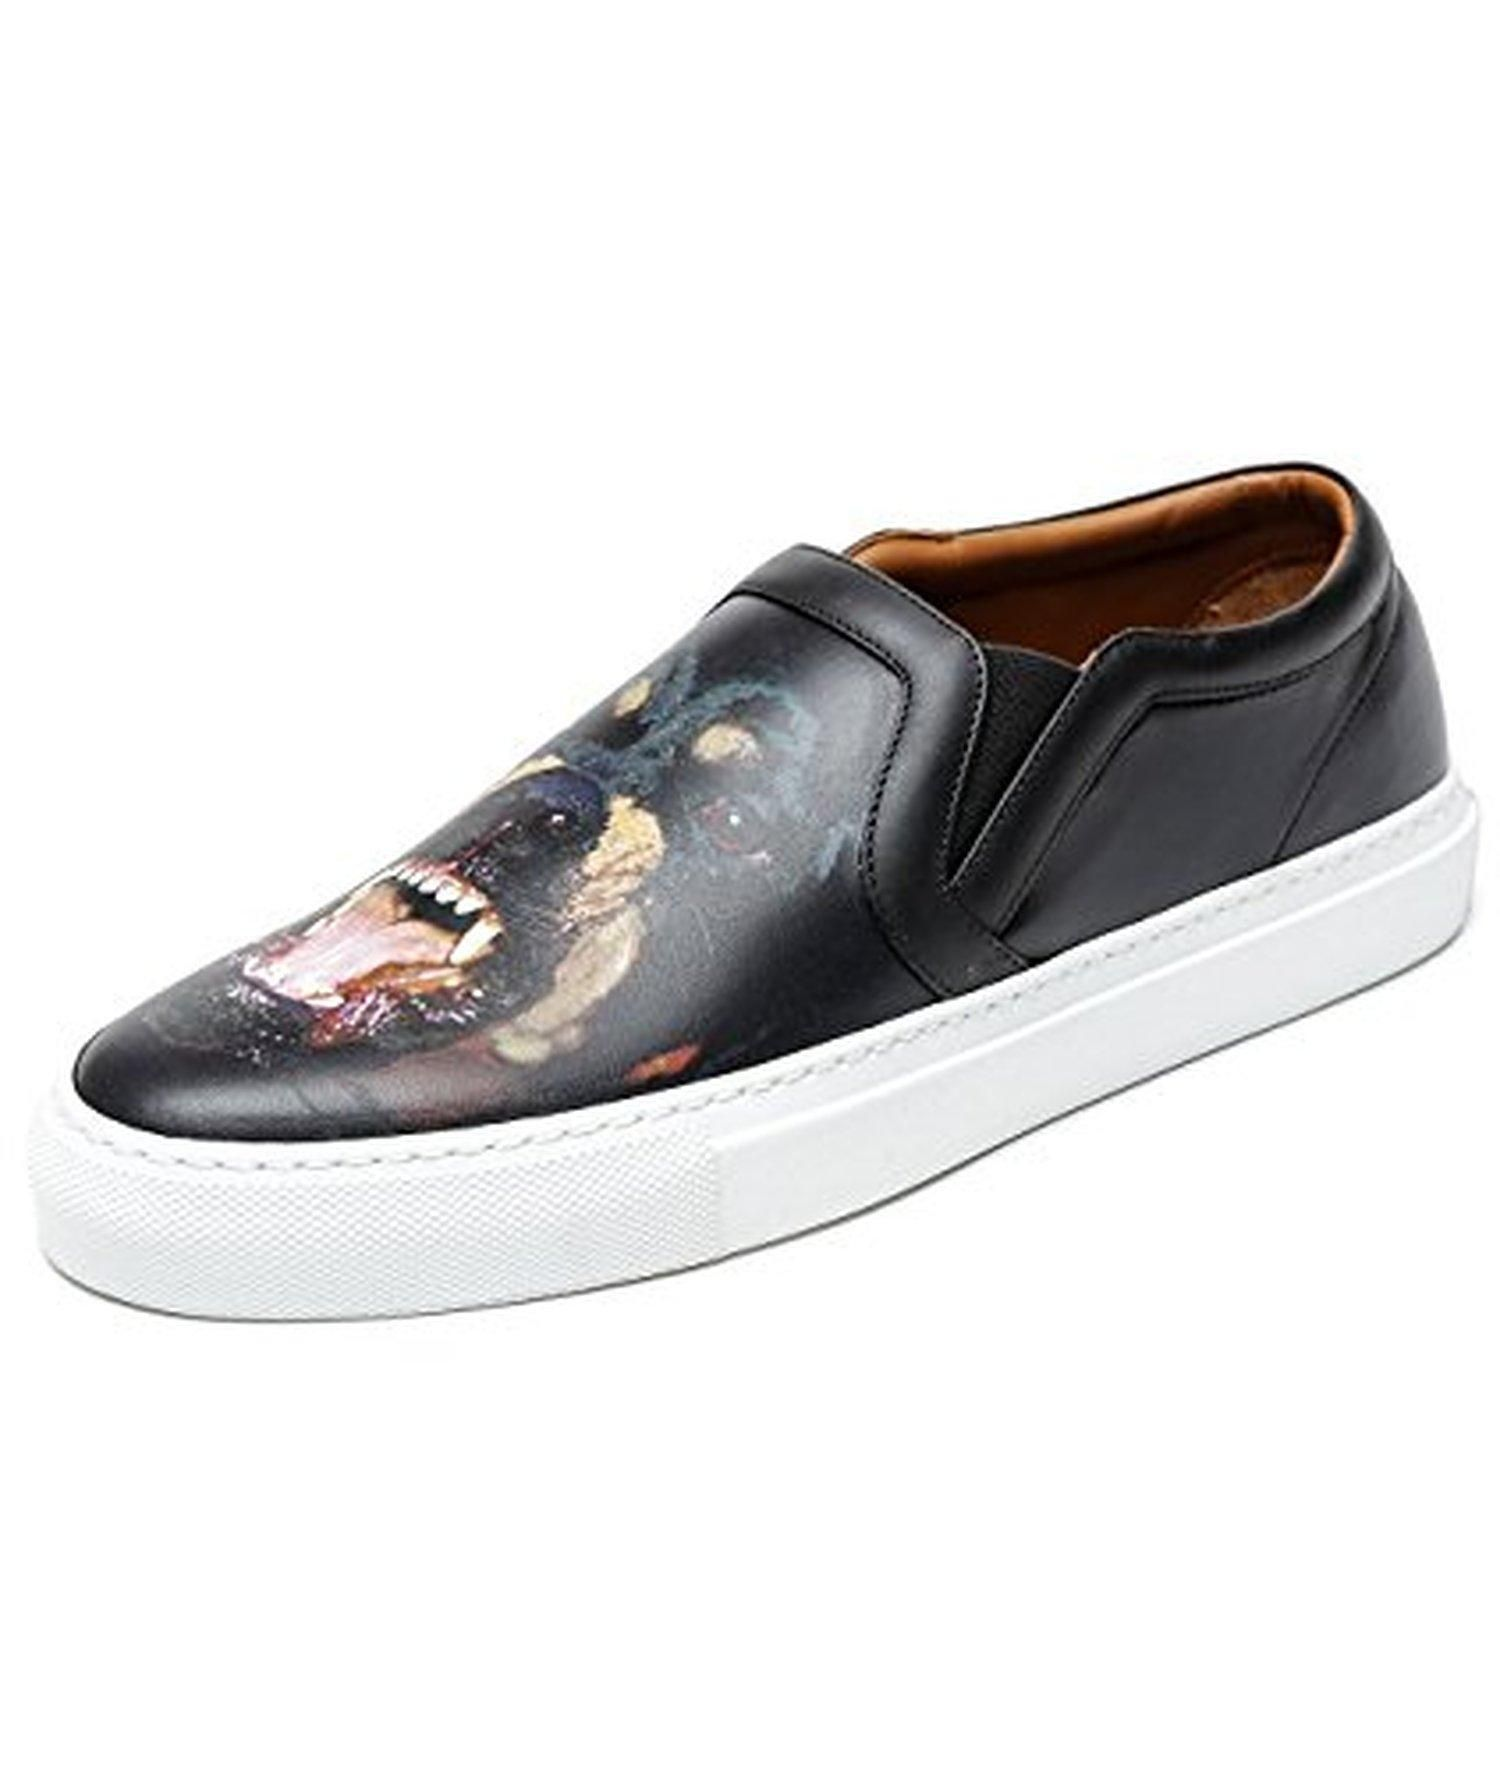 Wiberlux Givenchy Men's Dog Print Real Leather Slip-On Sneakers 44 Black -  Brought to